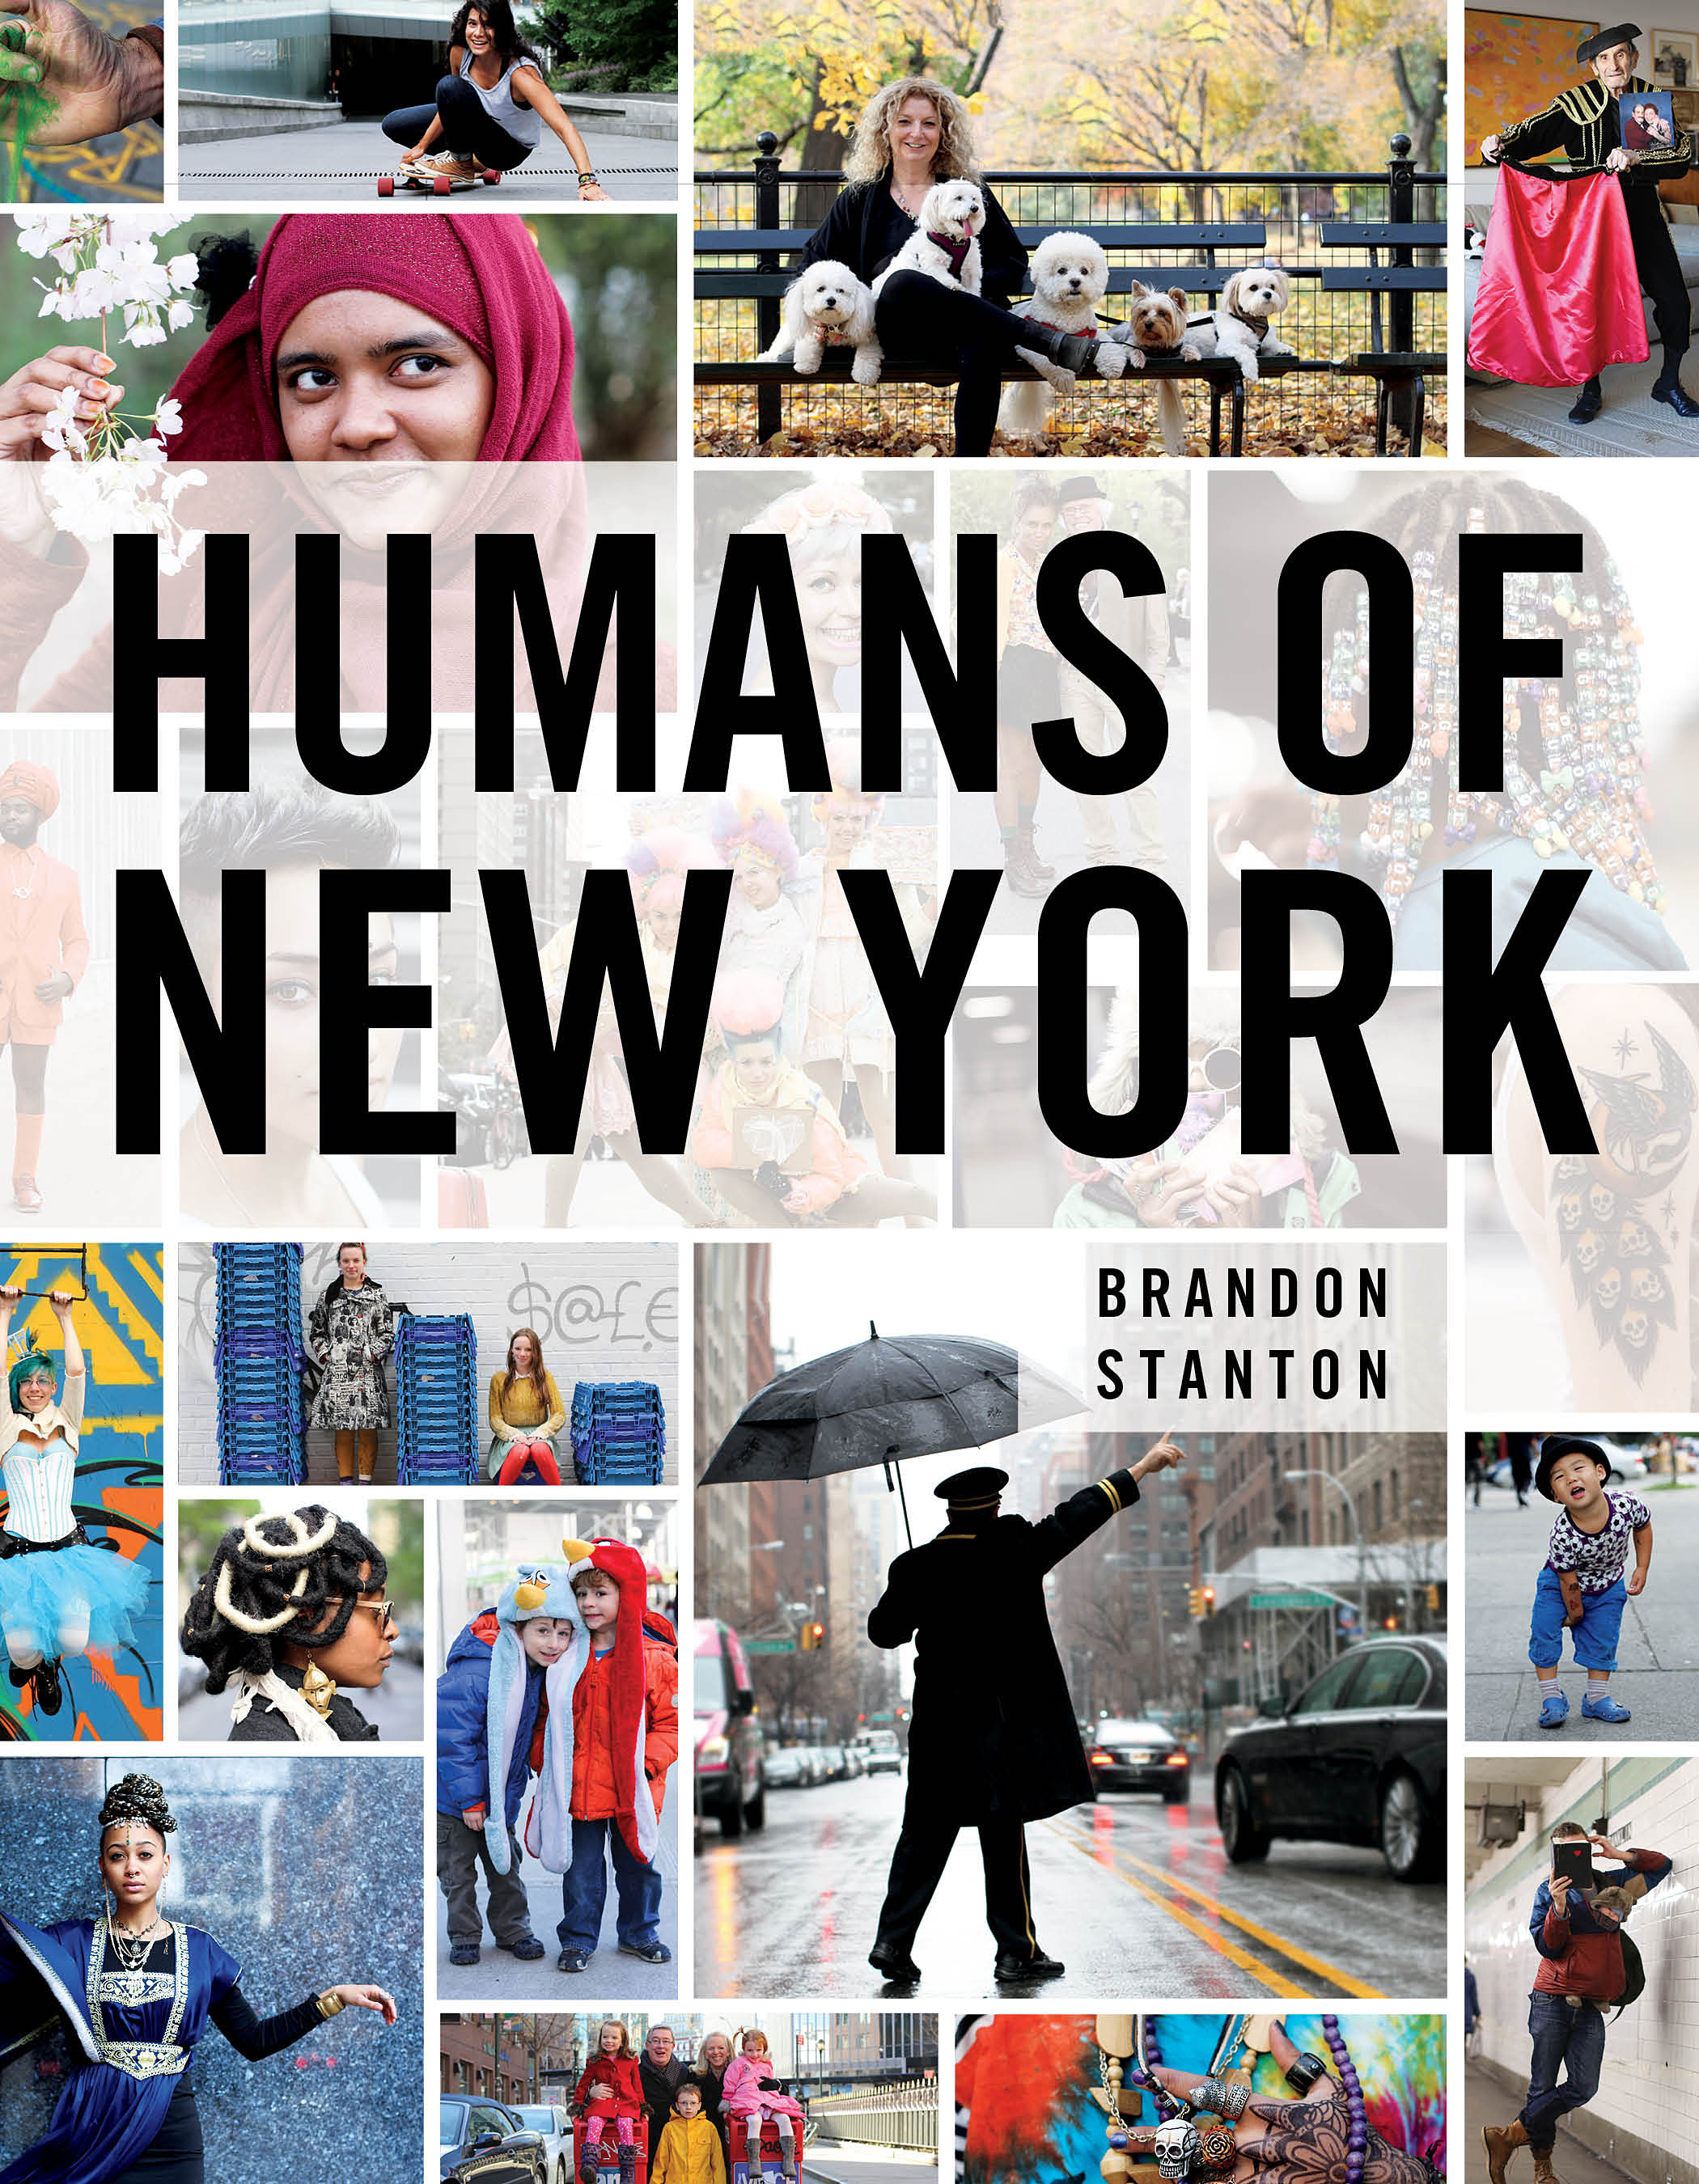 Brooklyn Book Launch: Humans of New York by Brandon Stanton